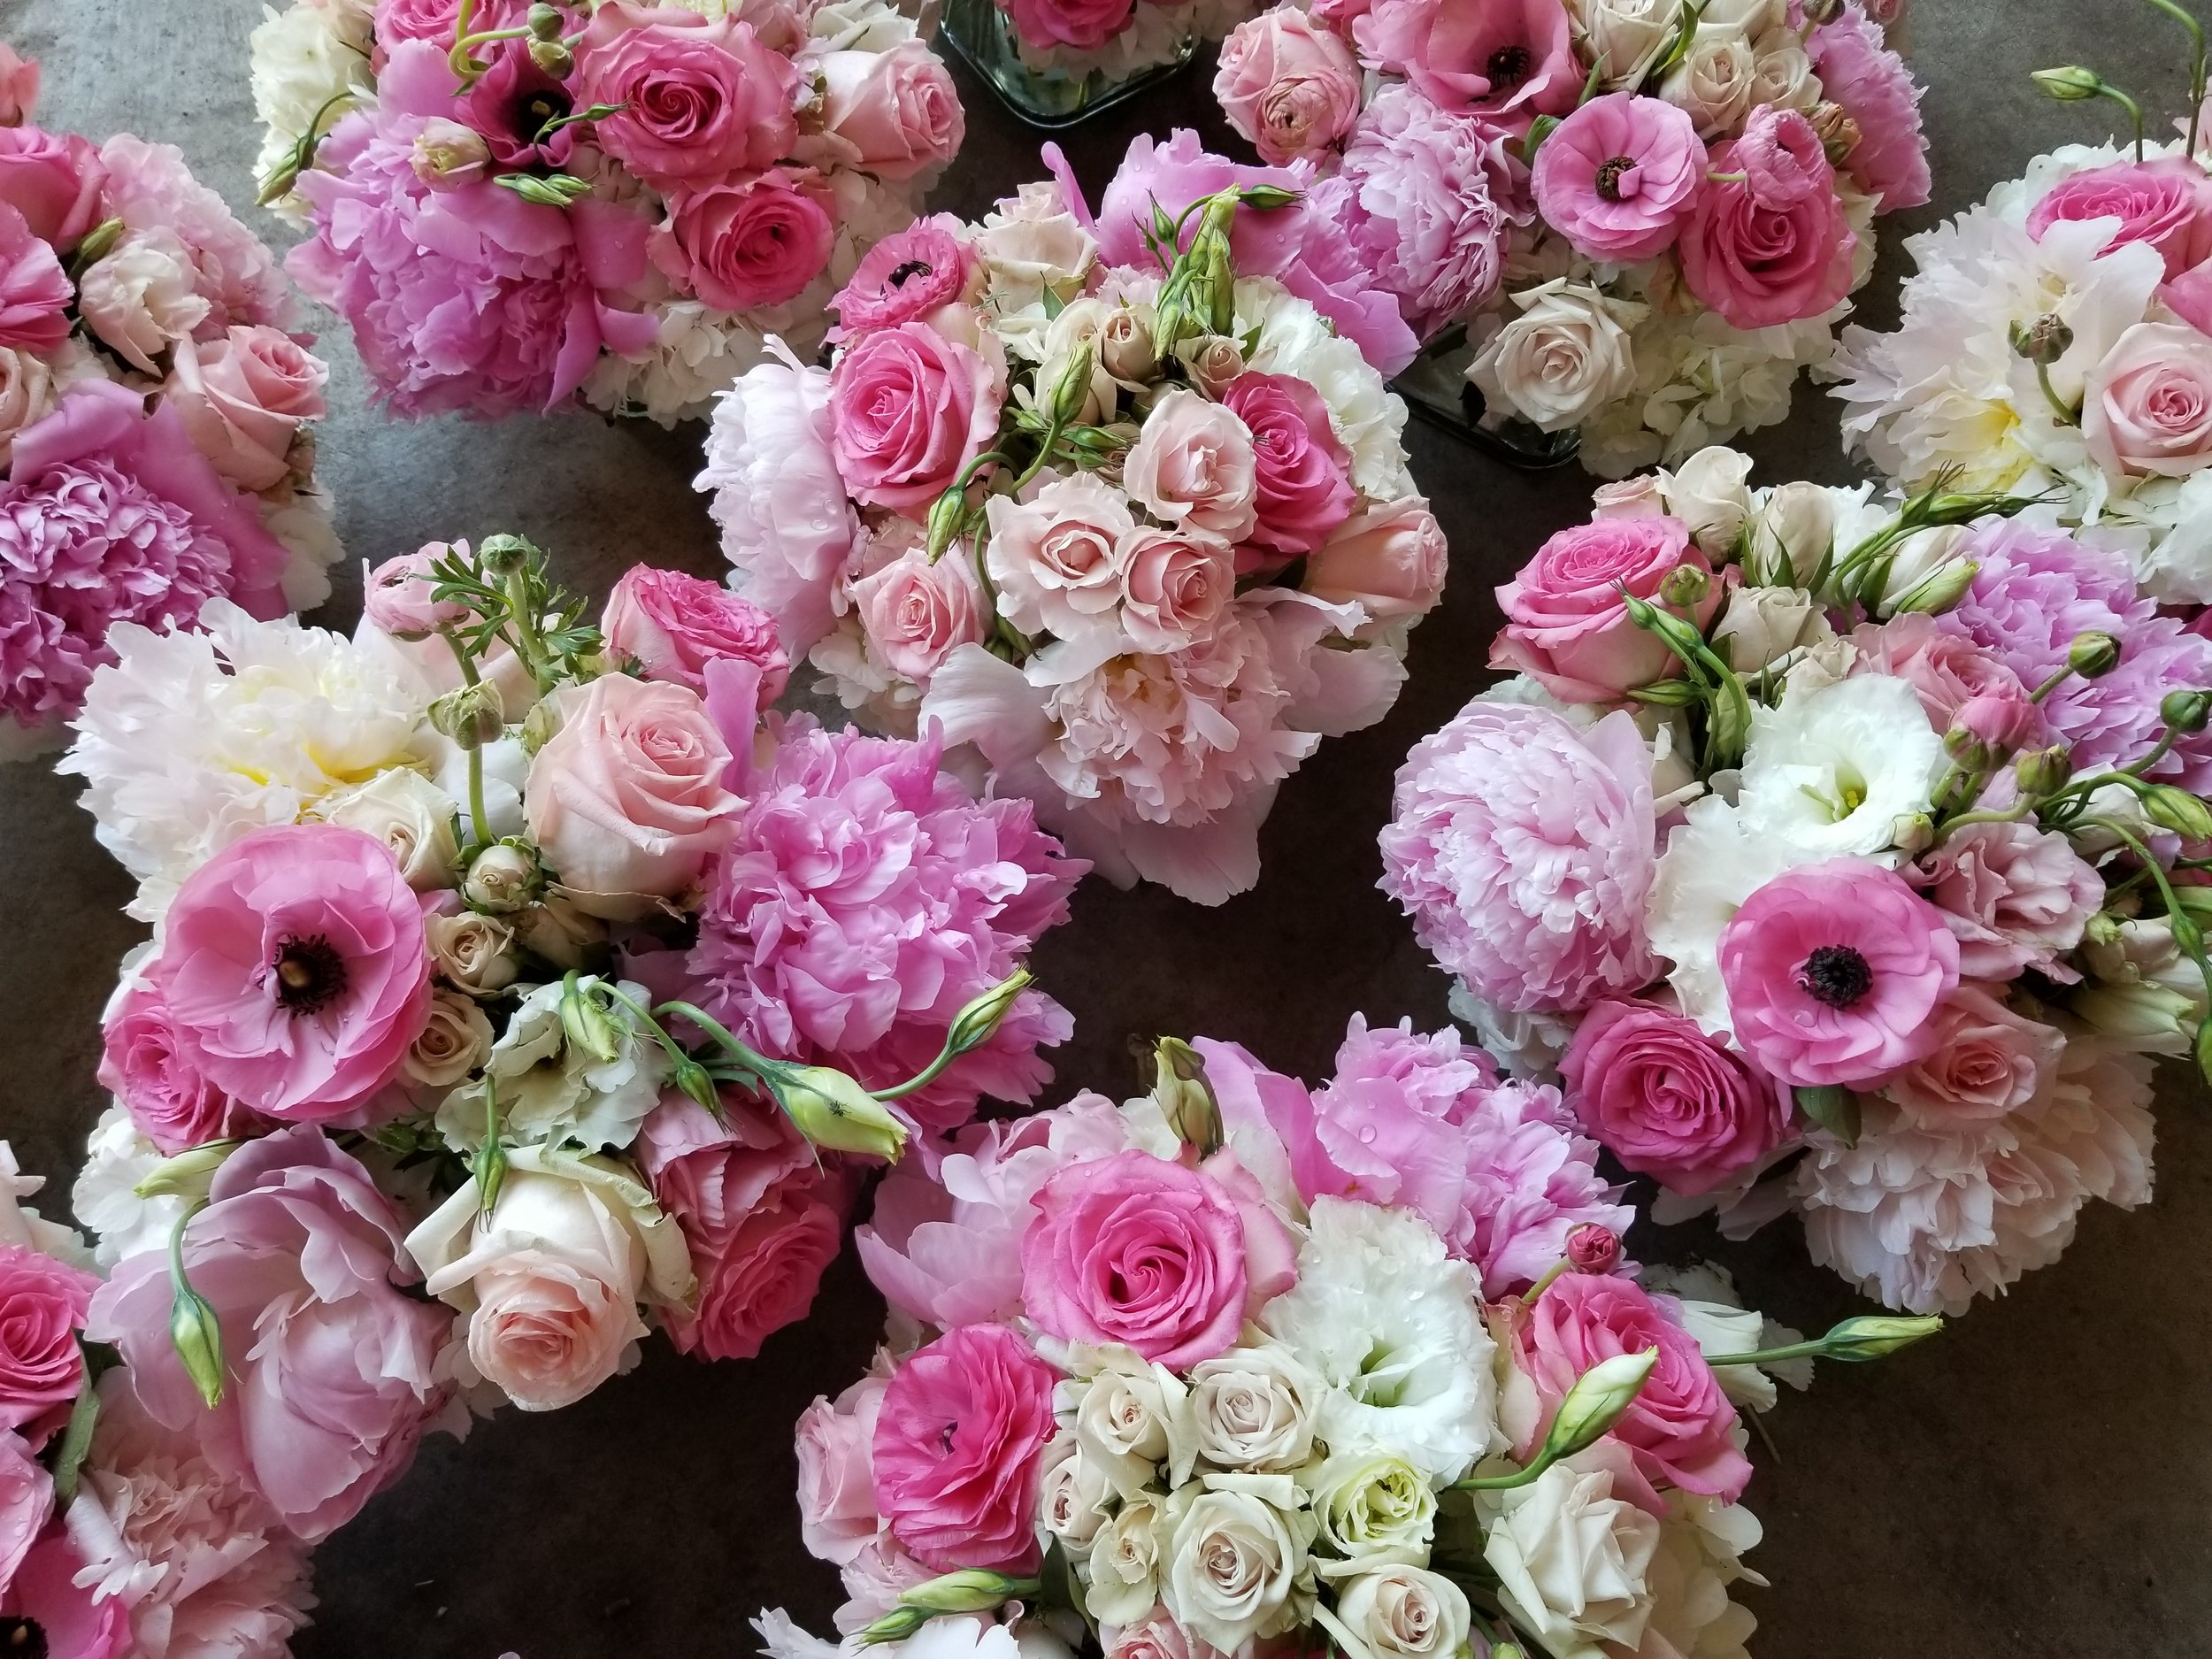 2018-06-02 Pink centerpiece flowers.jpg